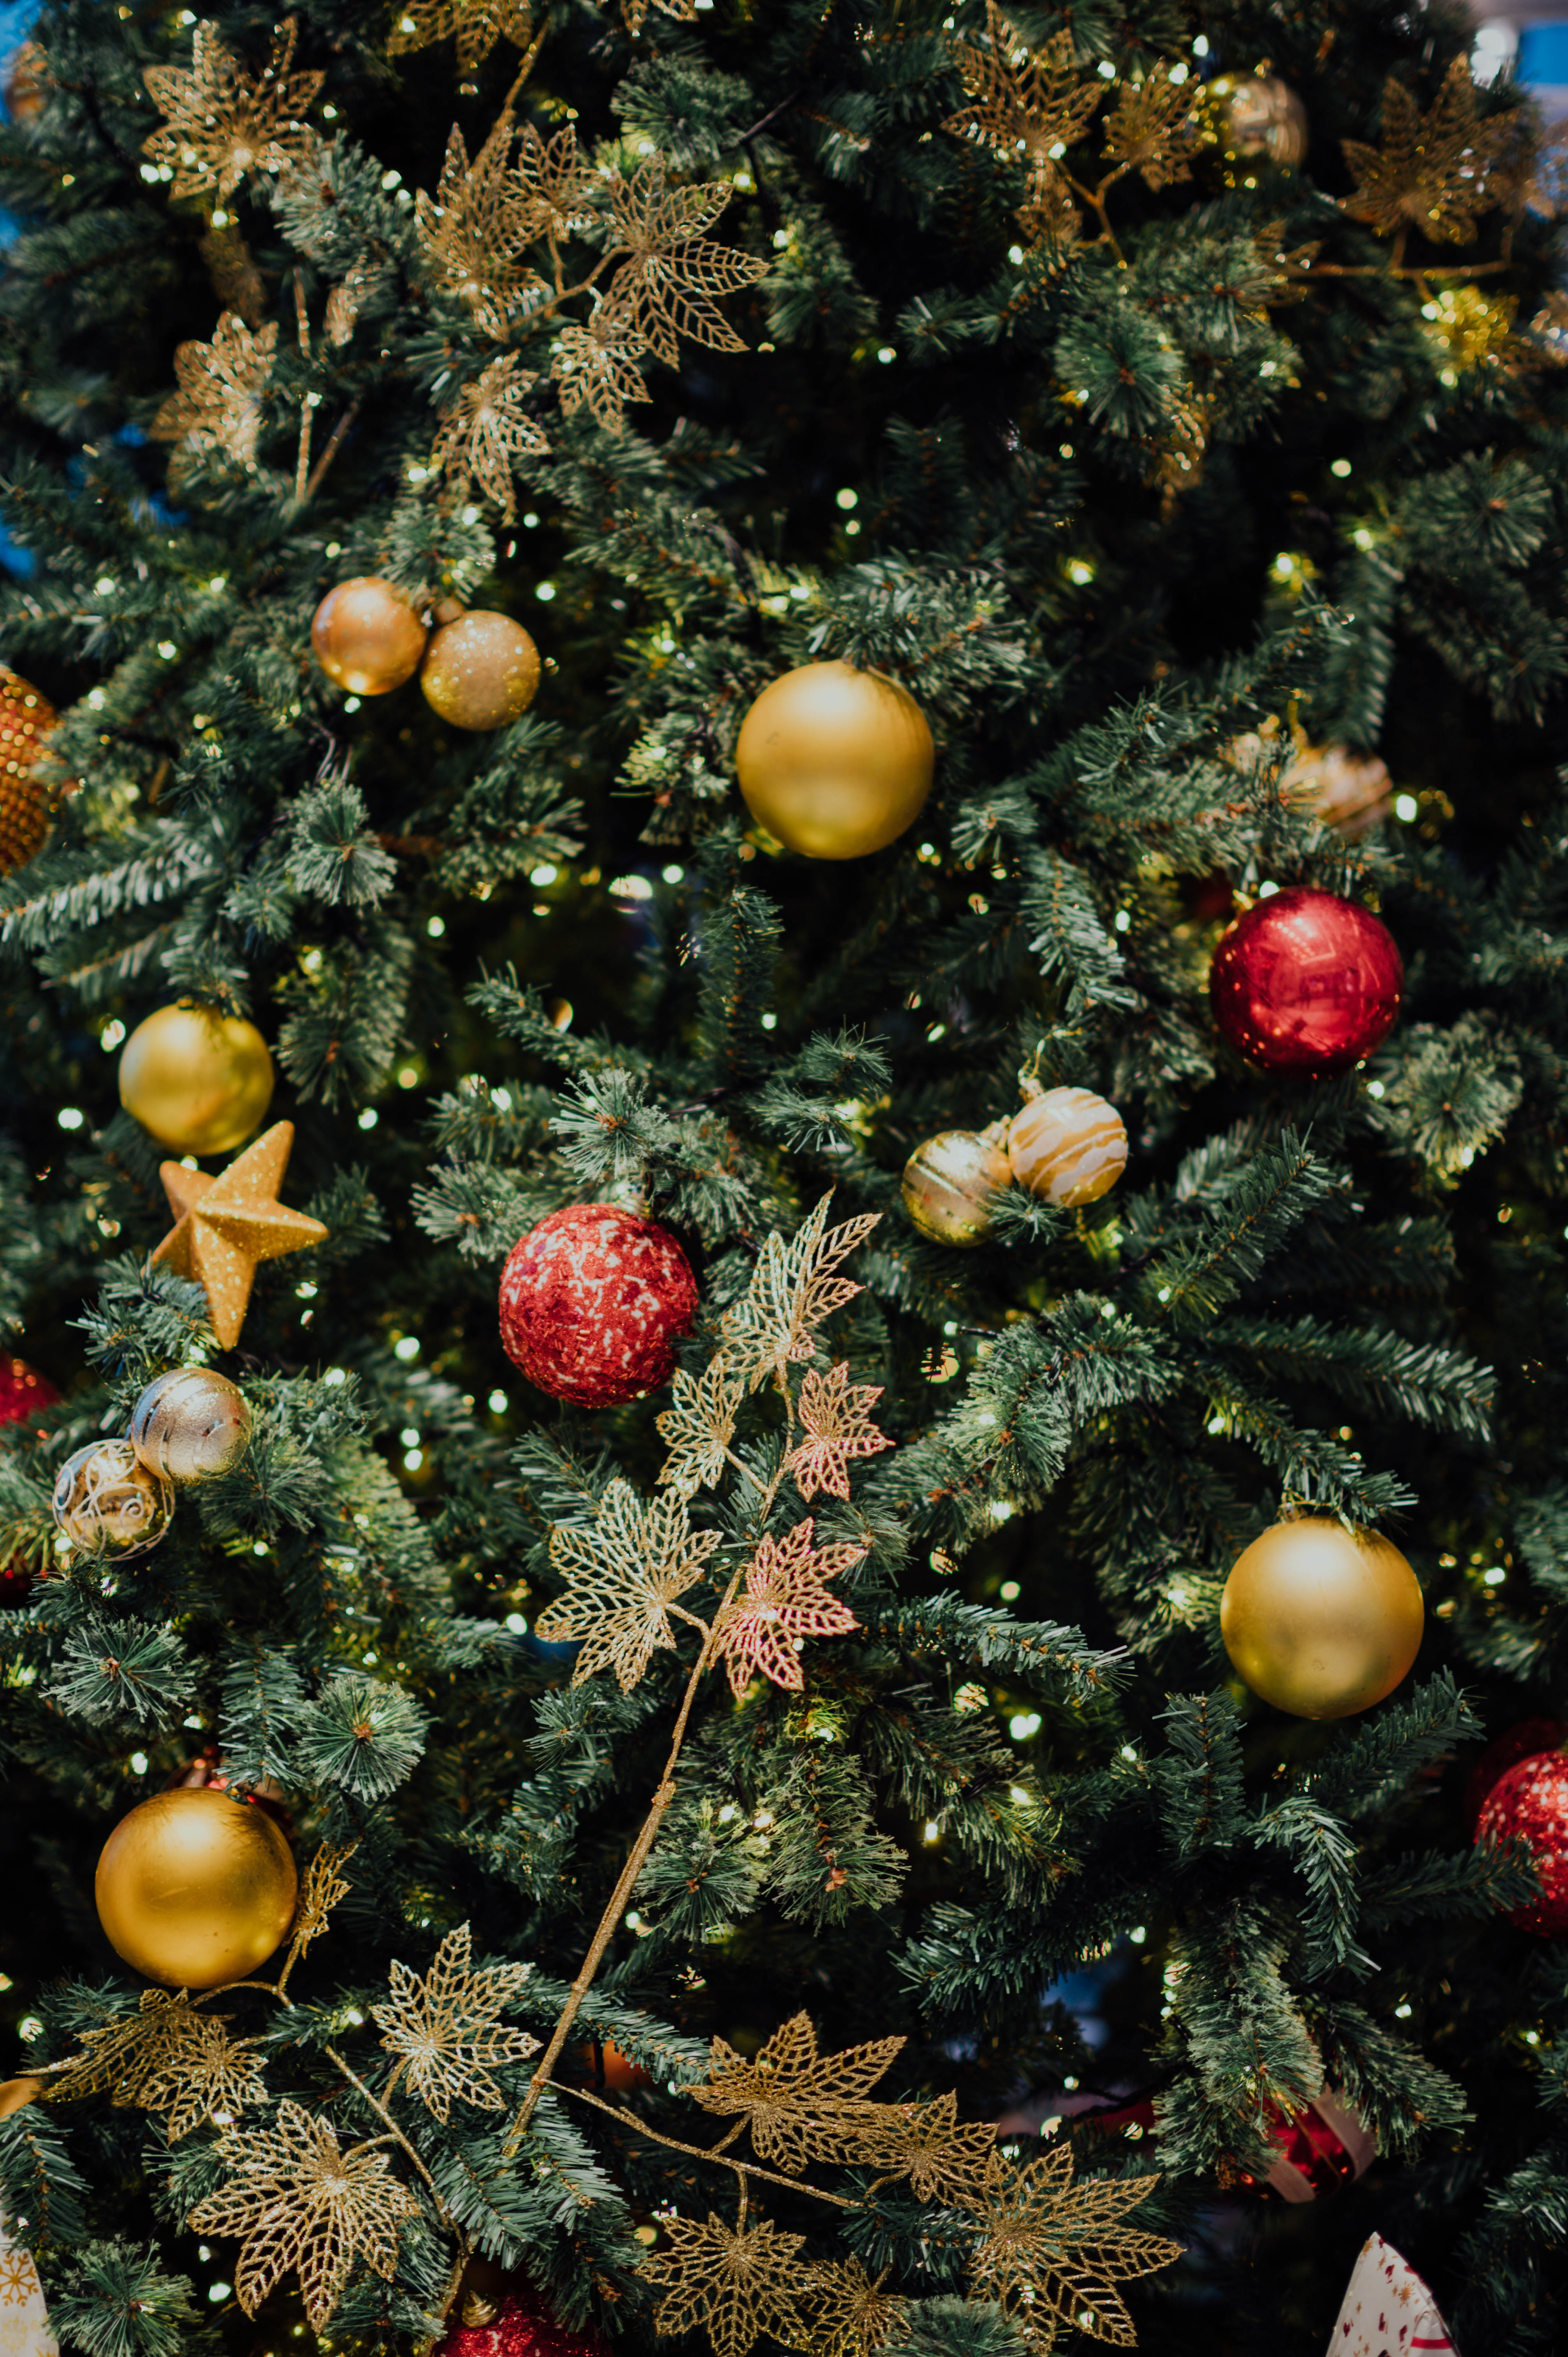 Annual Christmas Tree Festival at St